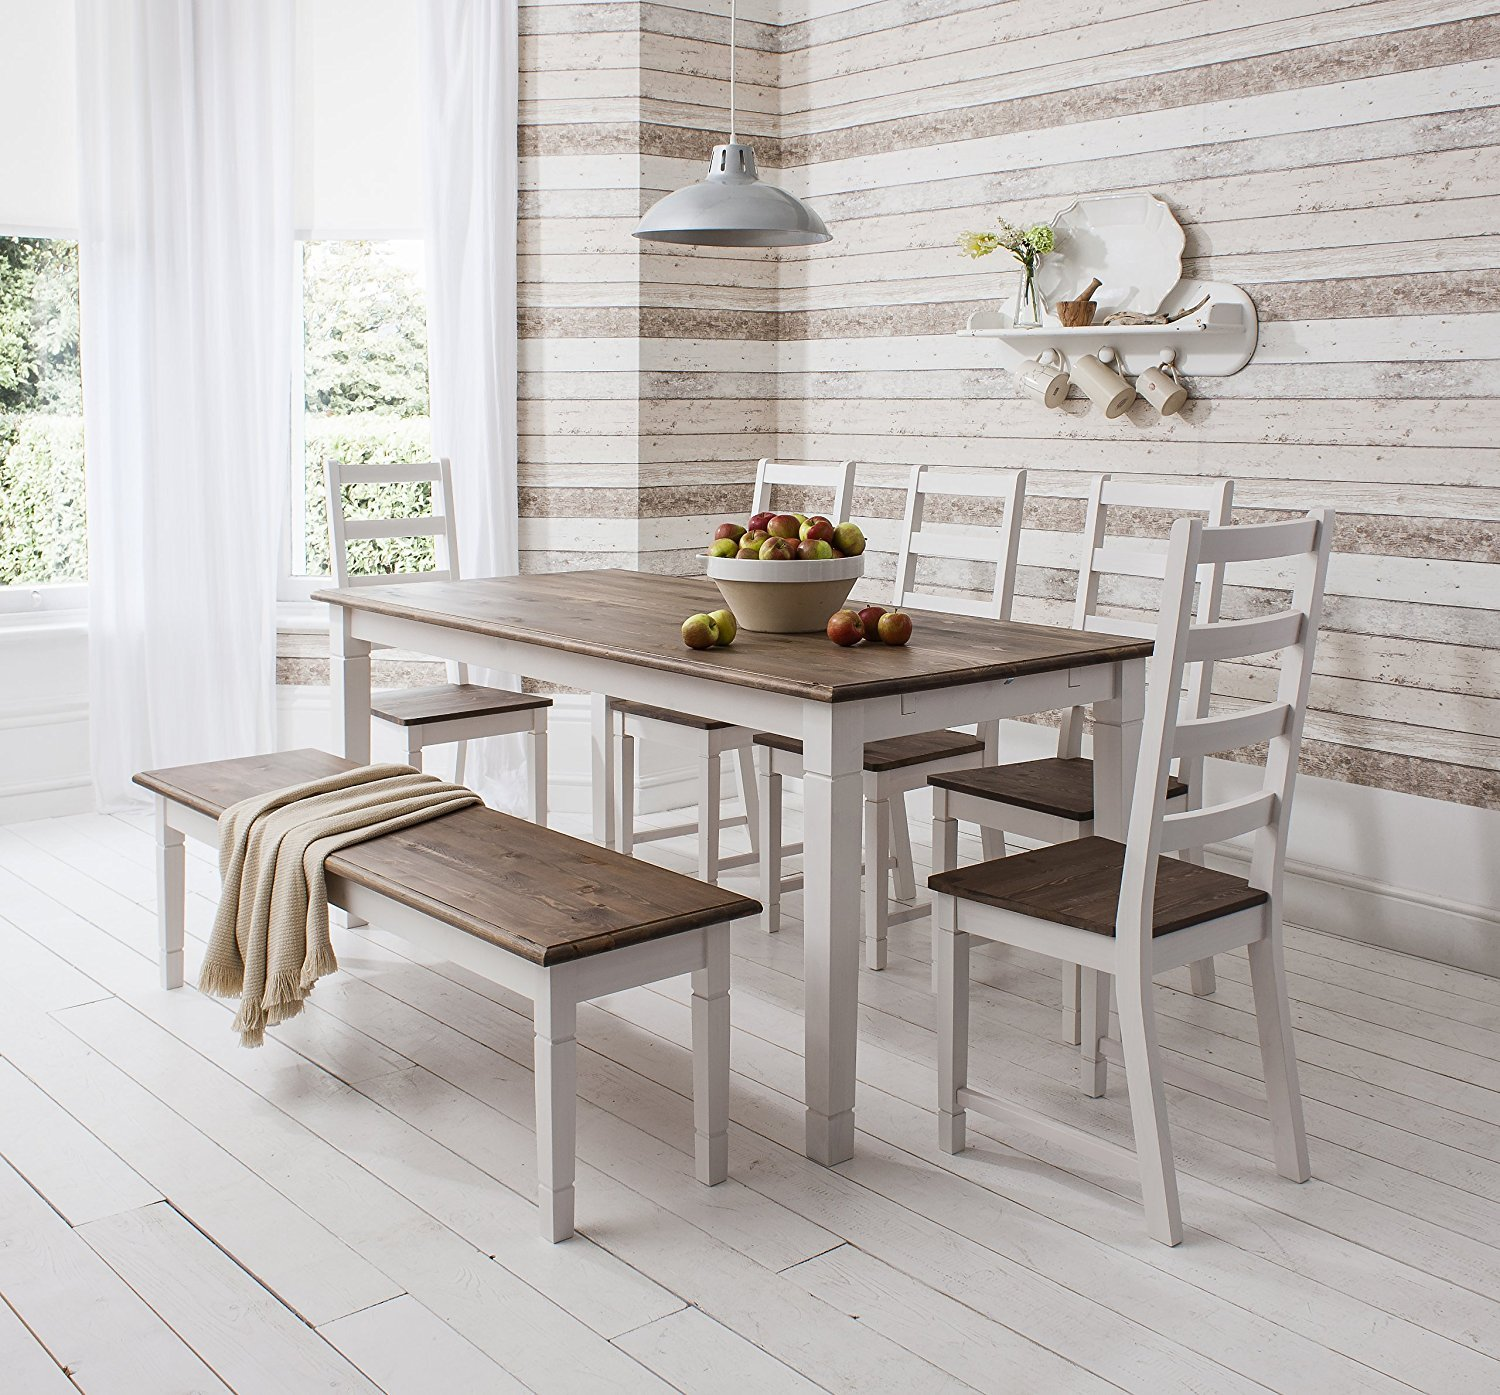 Dining Chairs And Benches For Rustic Interiors